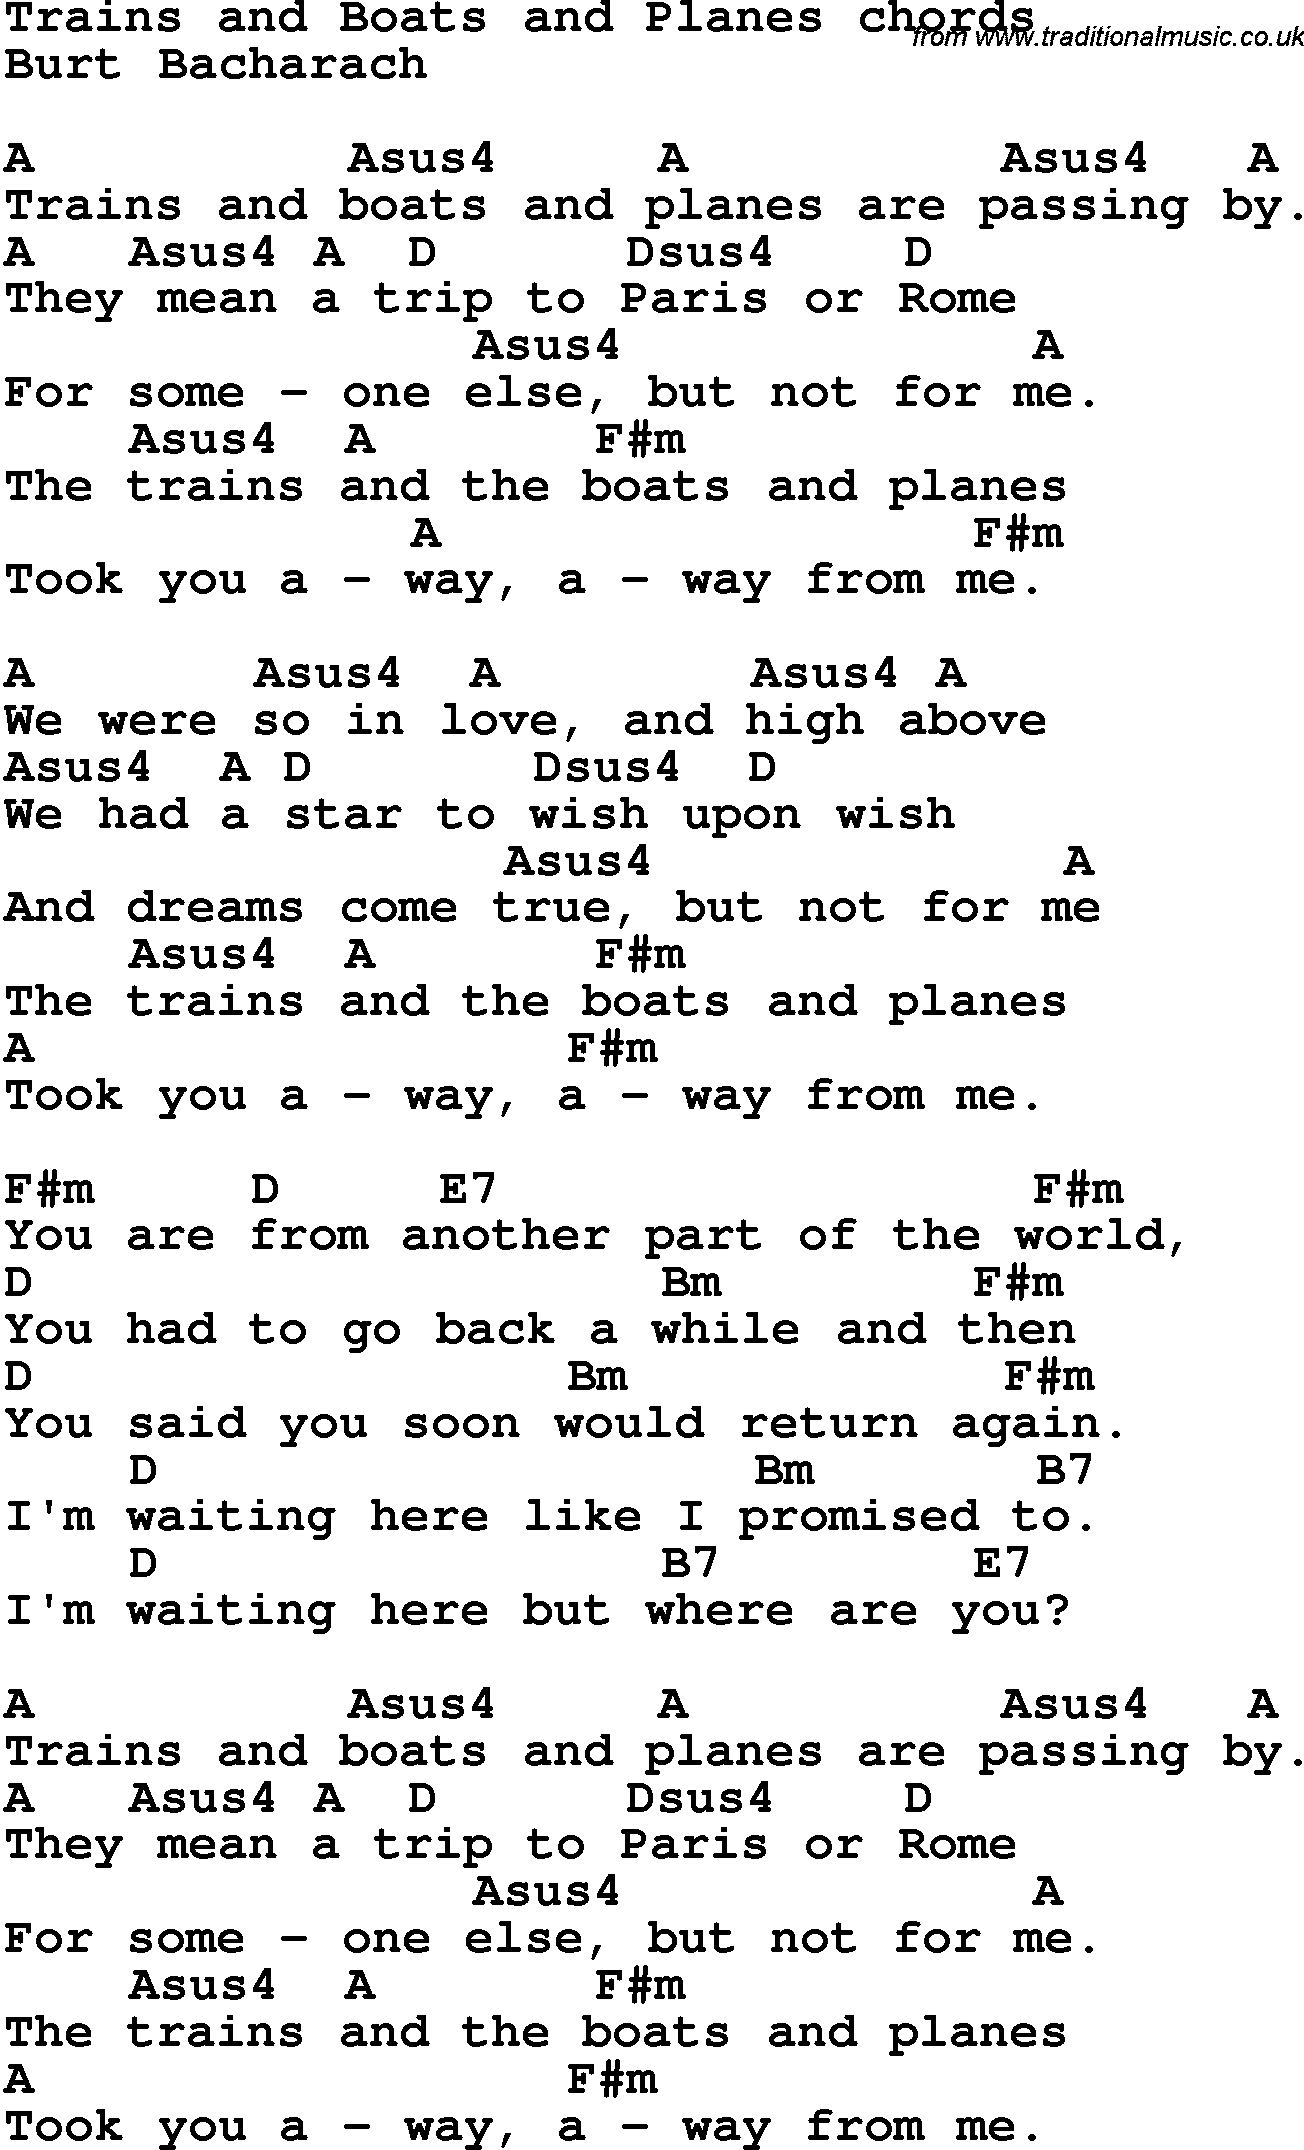 Song Lyrics With Guitar Chords For Trains And Boats And Planes